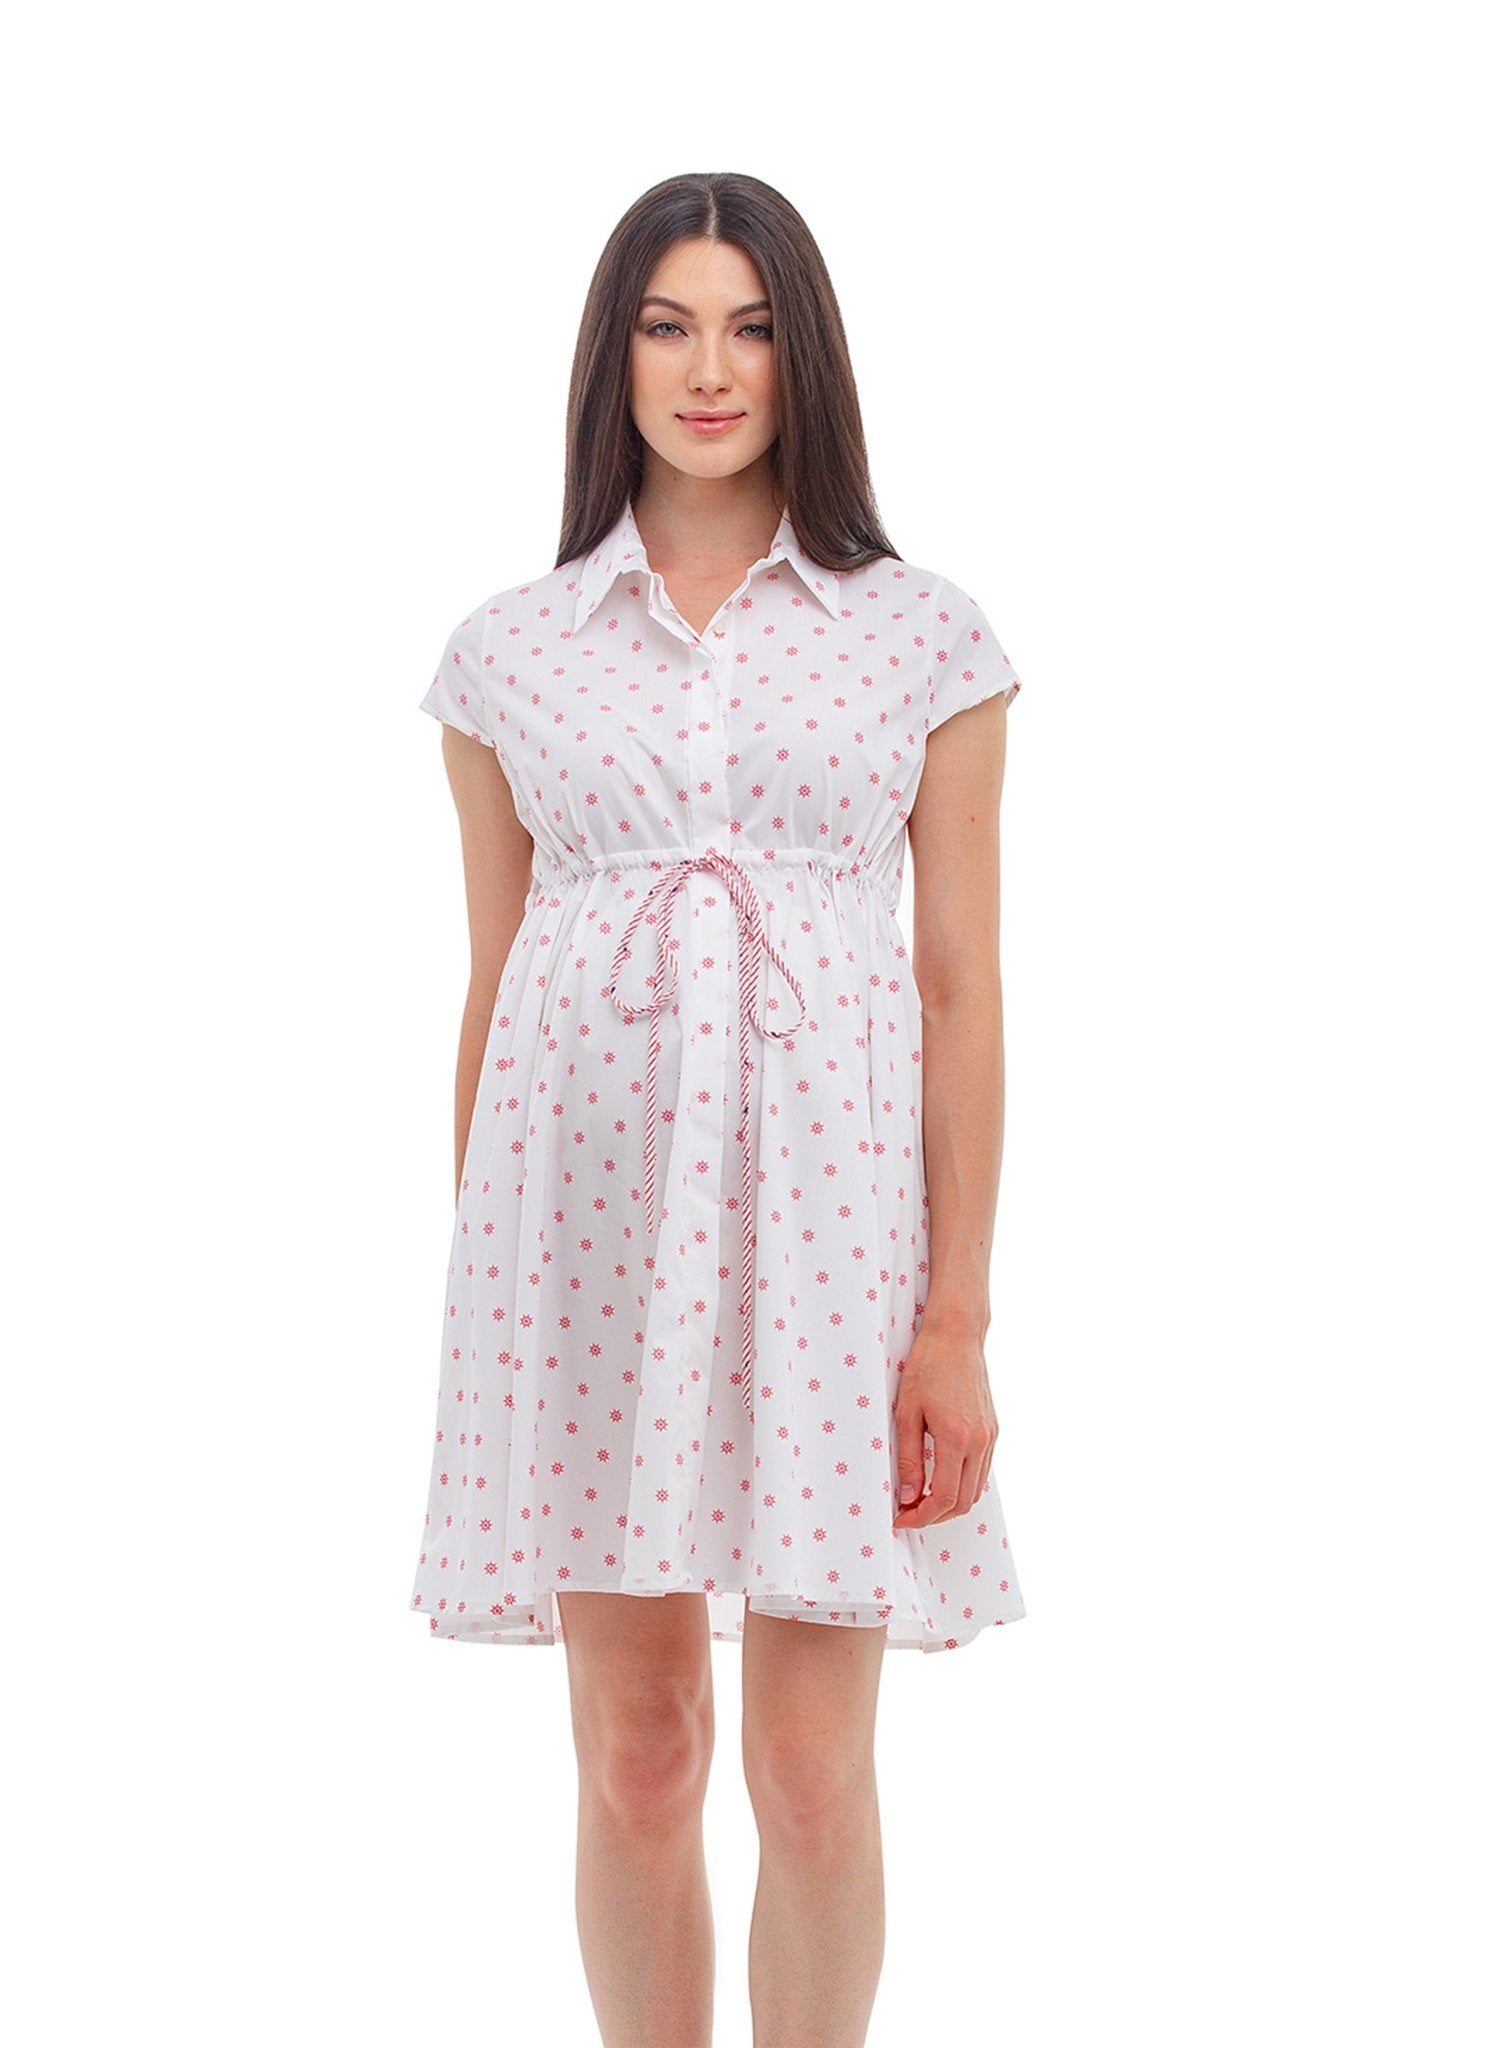 Ciclamino Maternity Dress - Red Ship Wheel - Mums and Bumps